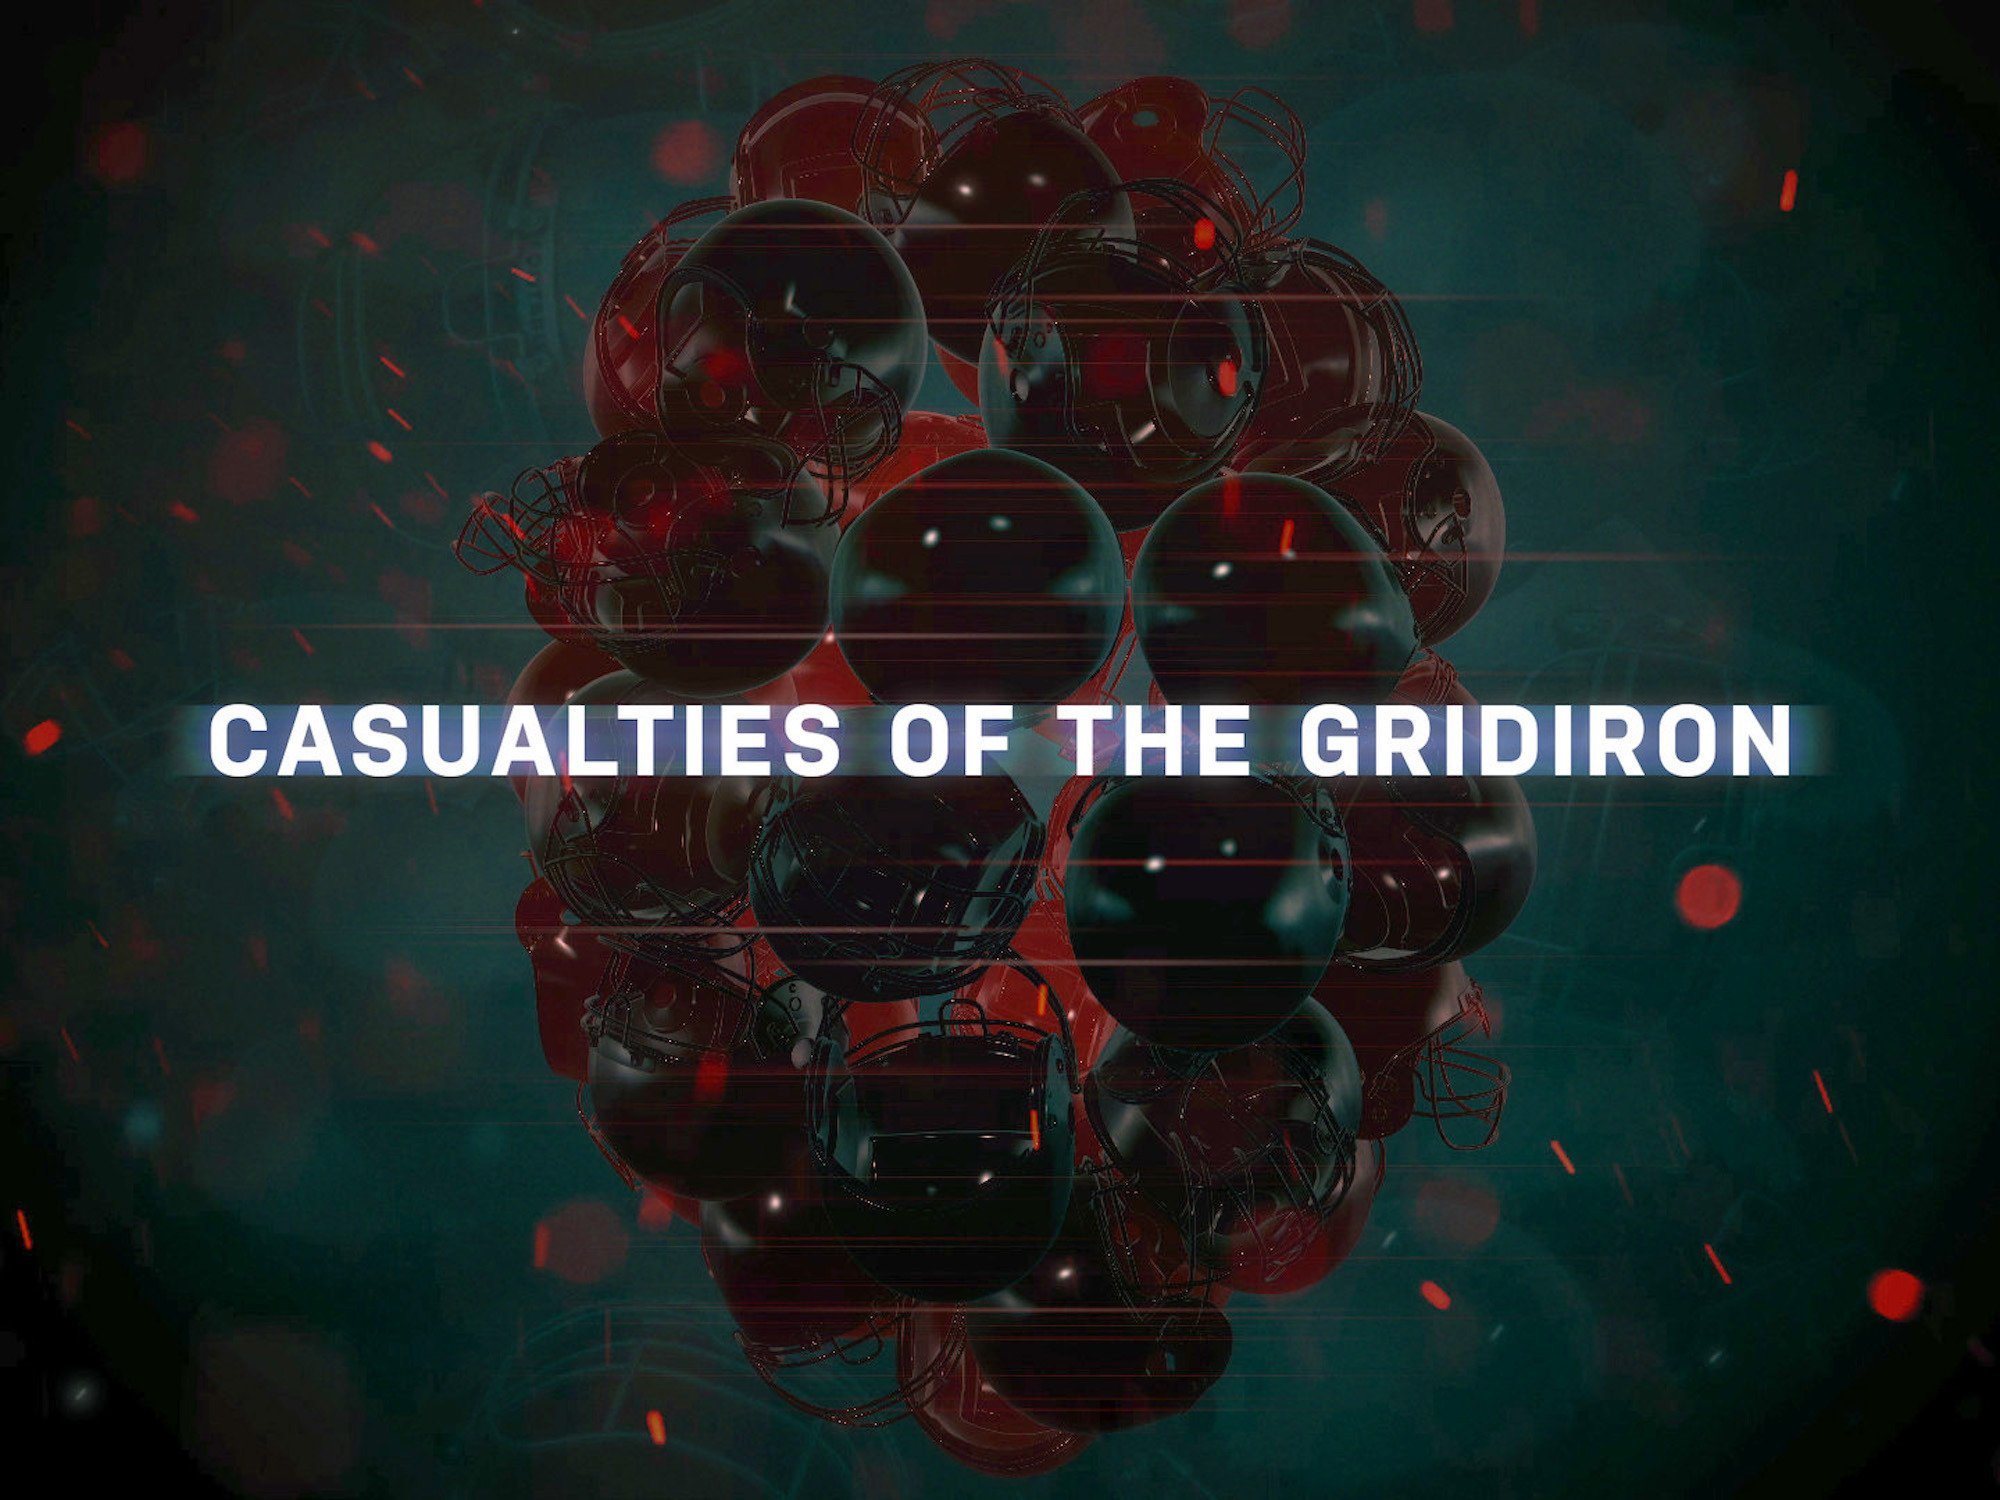 Casualties of the Gridiron - Season 2